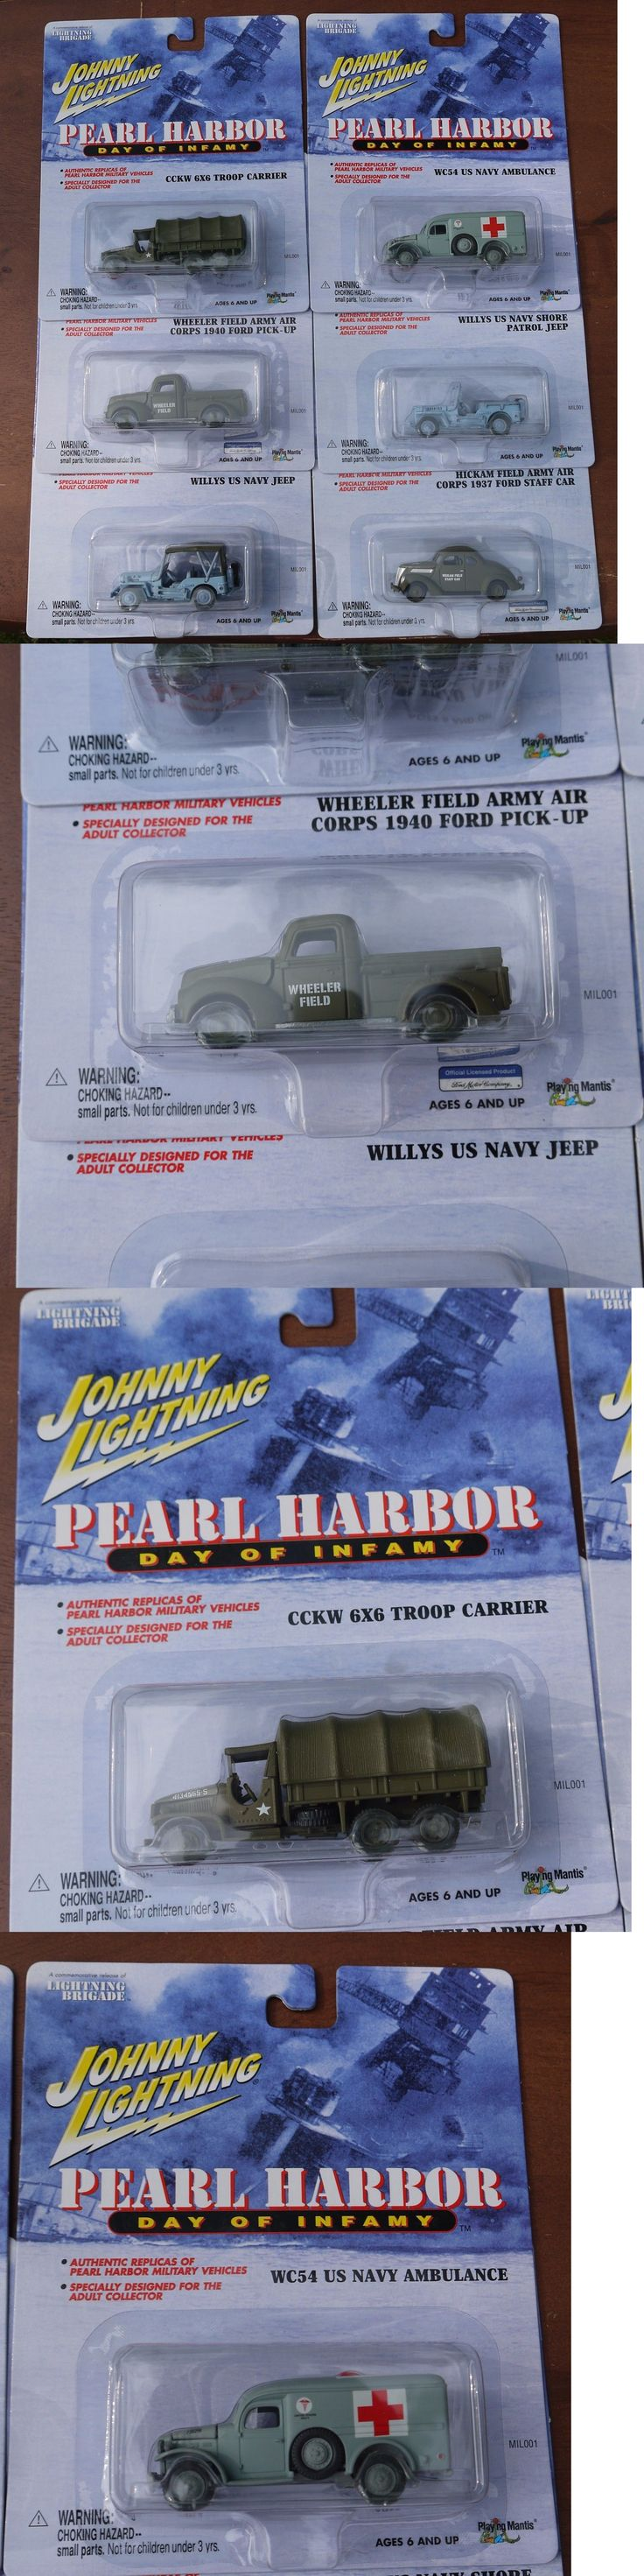 Tanks and Military Vehicles 171138: Johnny Lightning Pearl Harbor Day Of Infamy Complete Set -> BUY IT NOW ONLY: $66.66 on eBay!